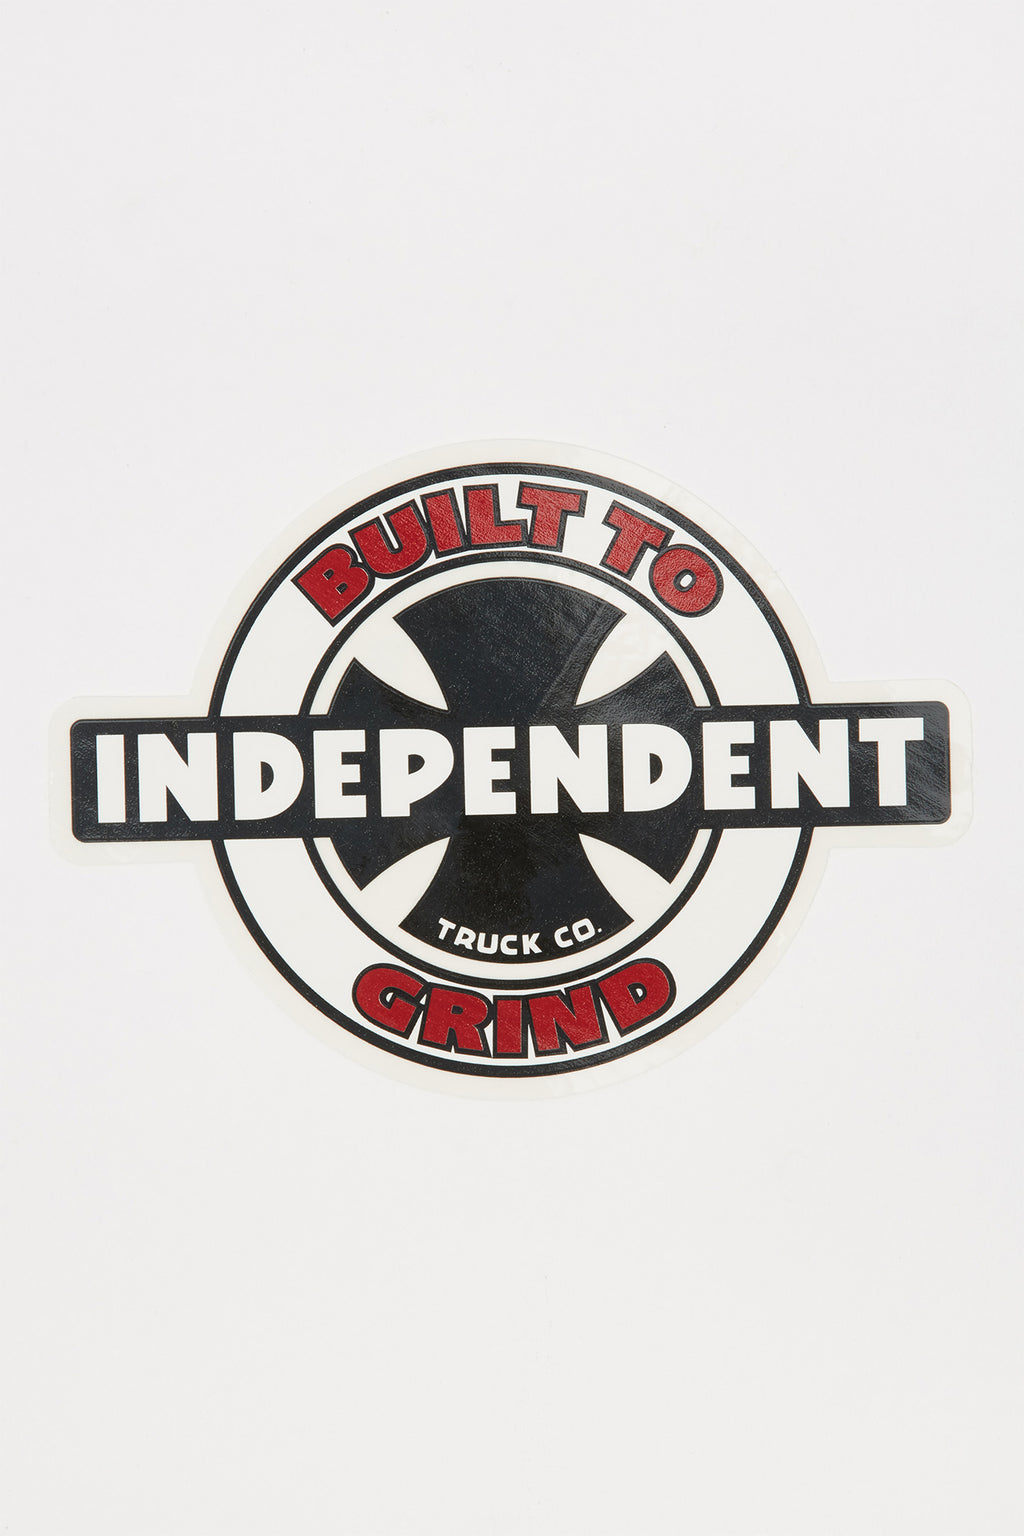 "Independent BuiltToGrind 5.5"" Sticker"